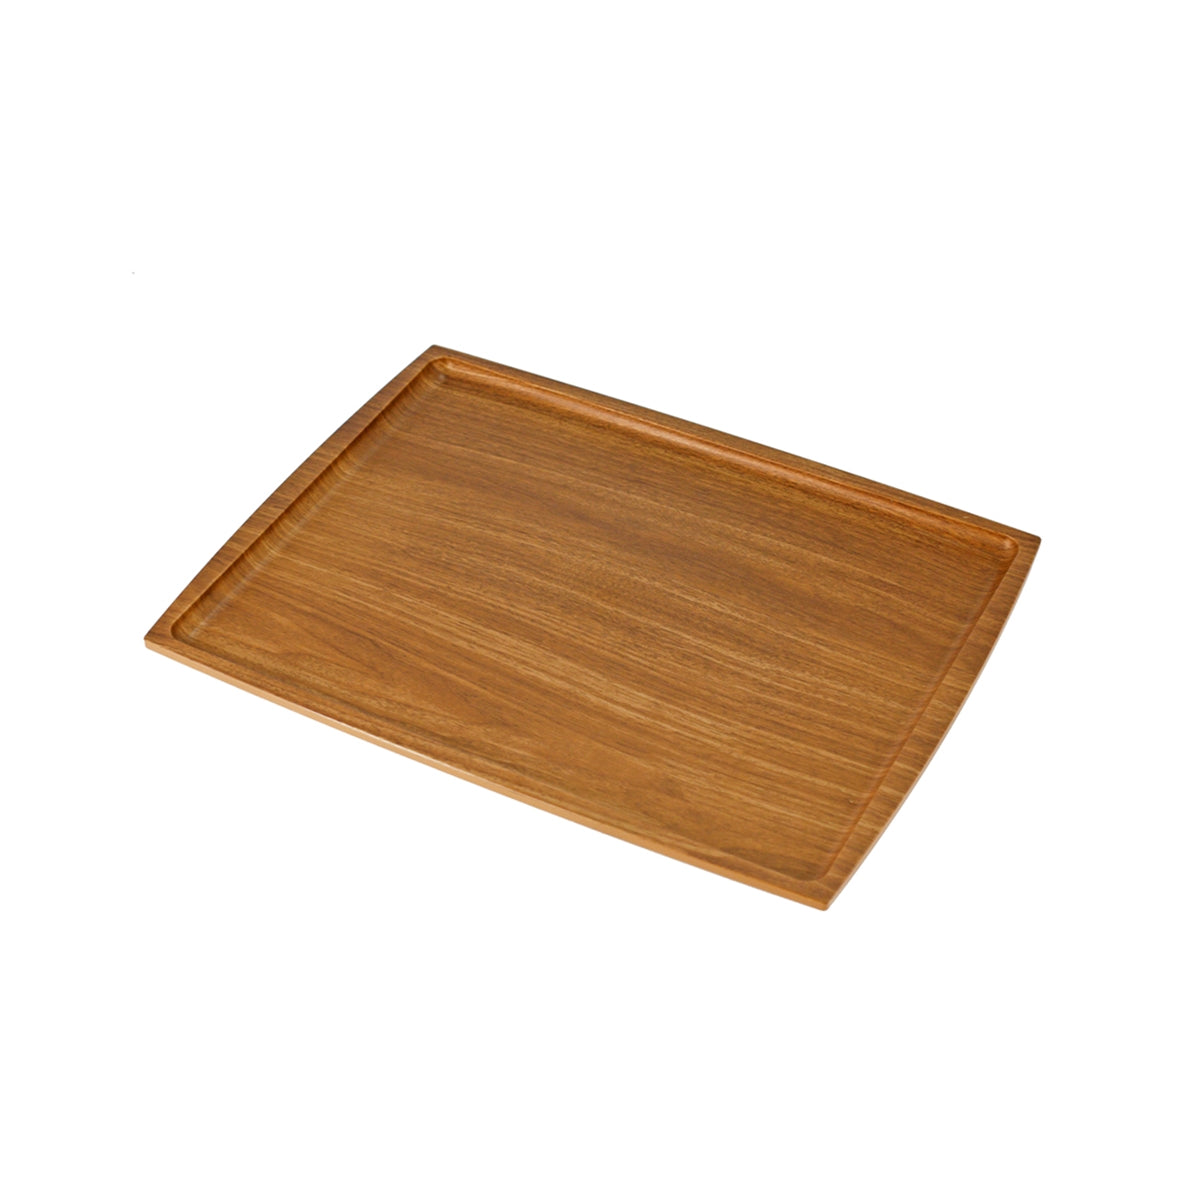 "Non-slip Rectangular Tray with Wooden Pattern 12.99"" x 9.45"""